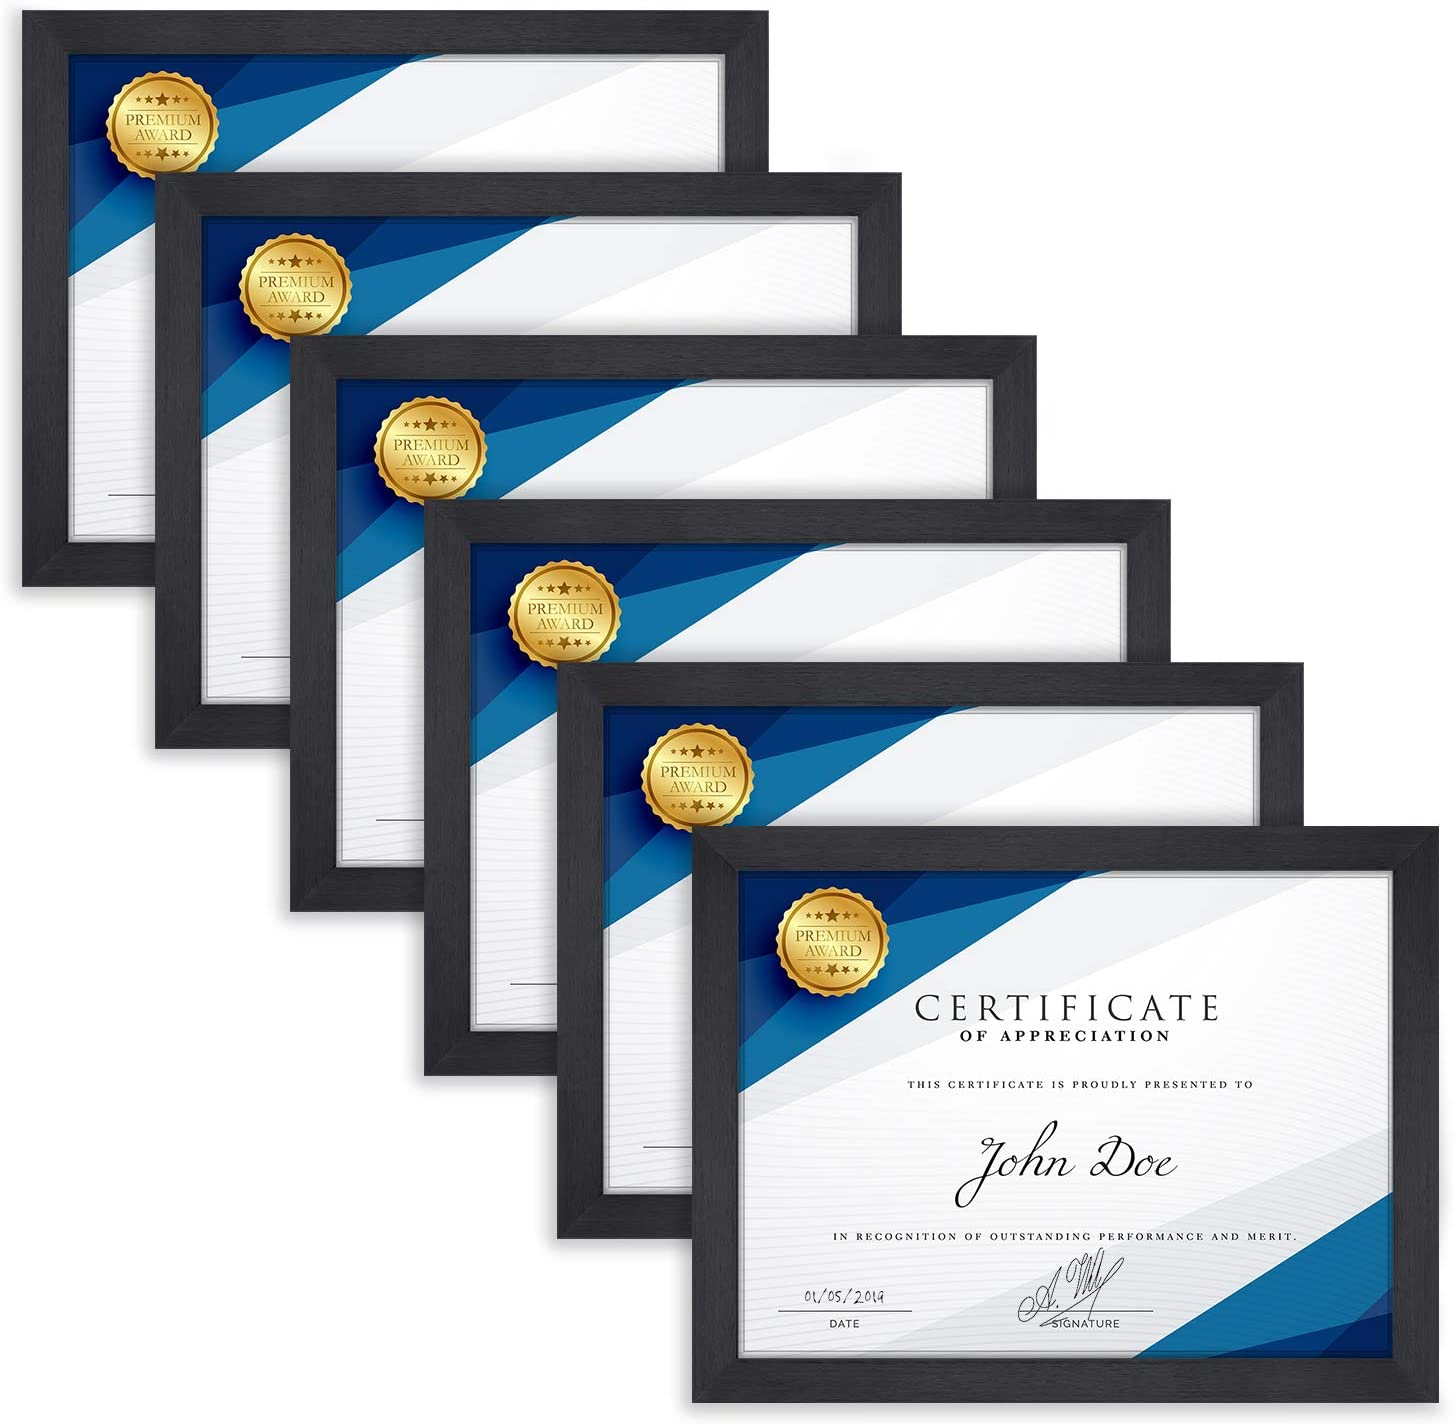 Langdon House 8.5x11 Document Frame Set (6 Pack, Black), Fabulous Black 8.5 x 11 Certificate Frames, Swivel Tabs, Tabletop Easel and Wall Hang Hardware Included, Tranquility Collection